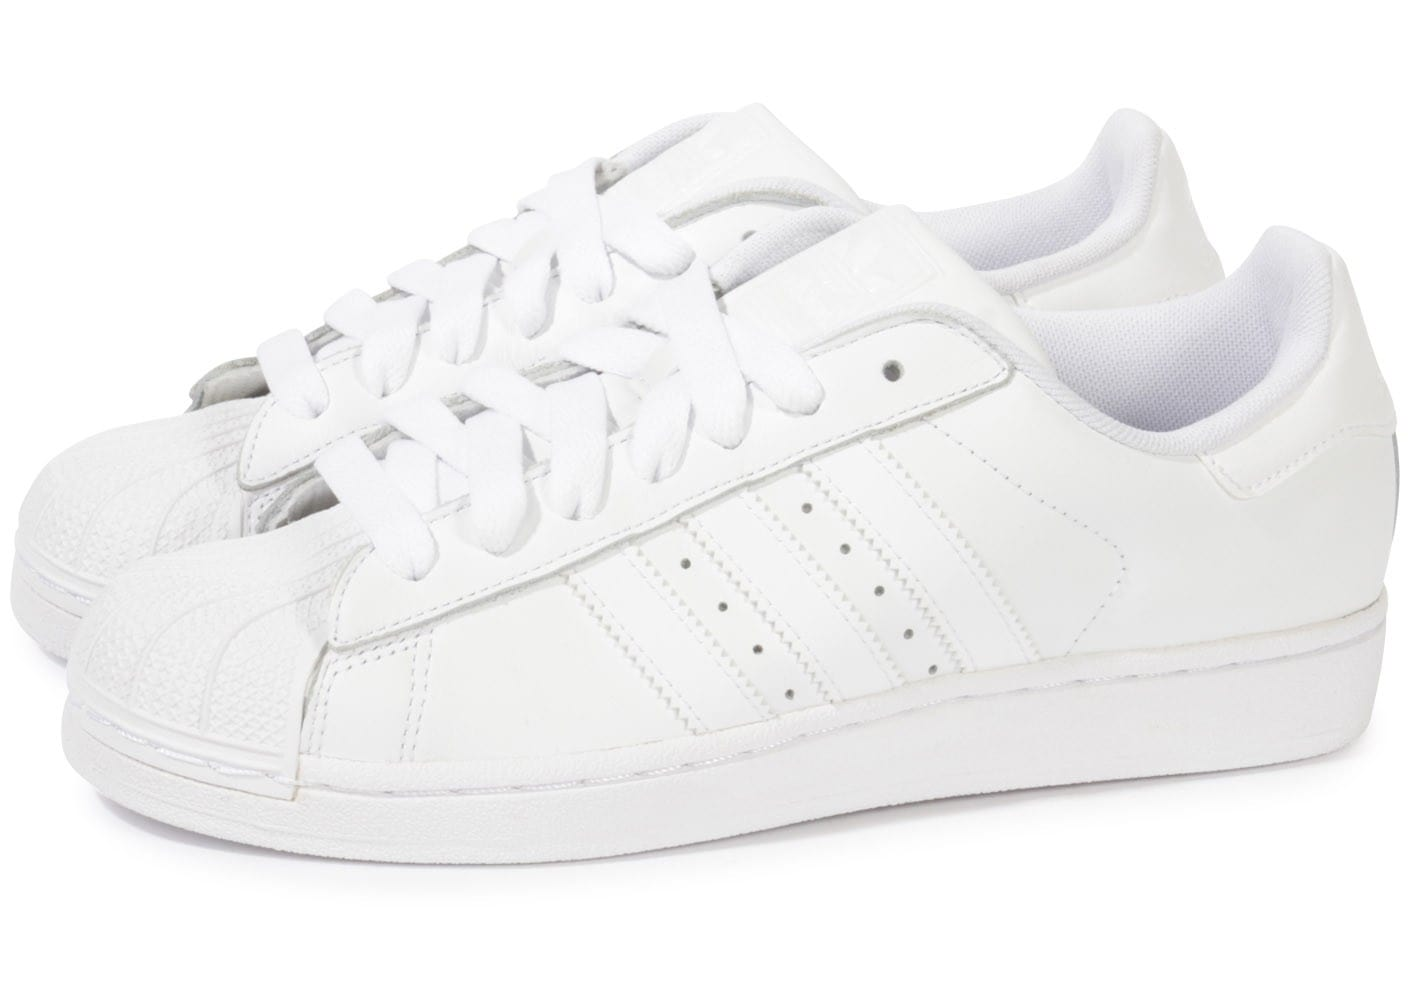 adidas superstar homme rue du commerce